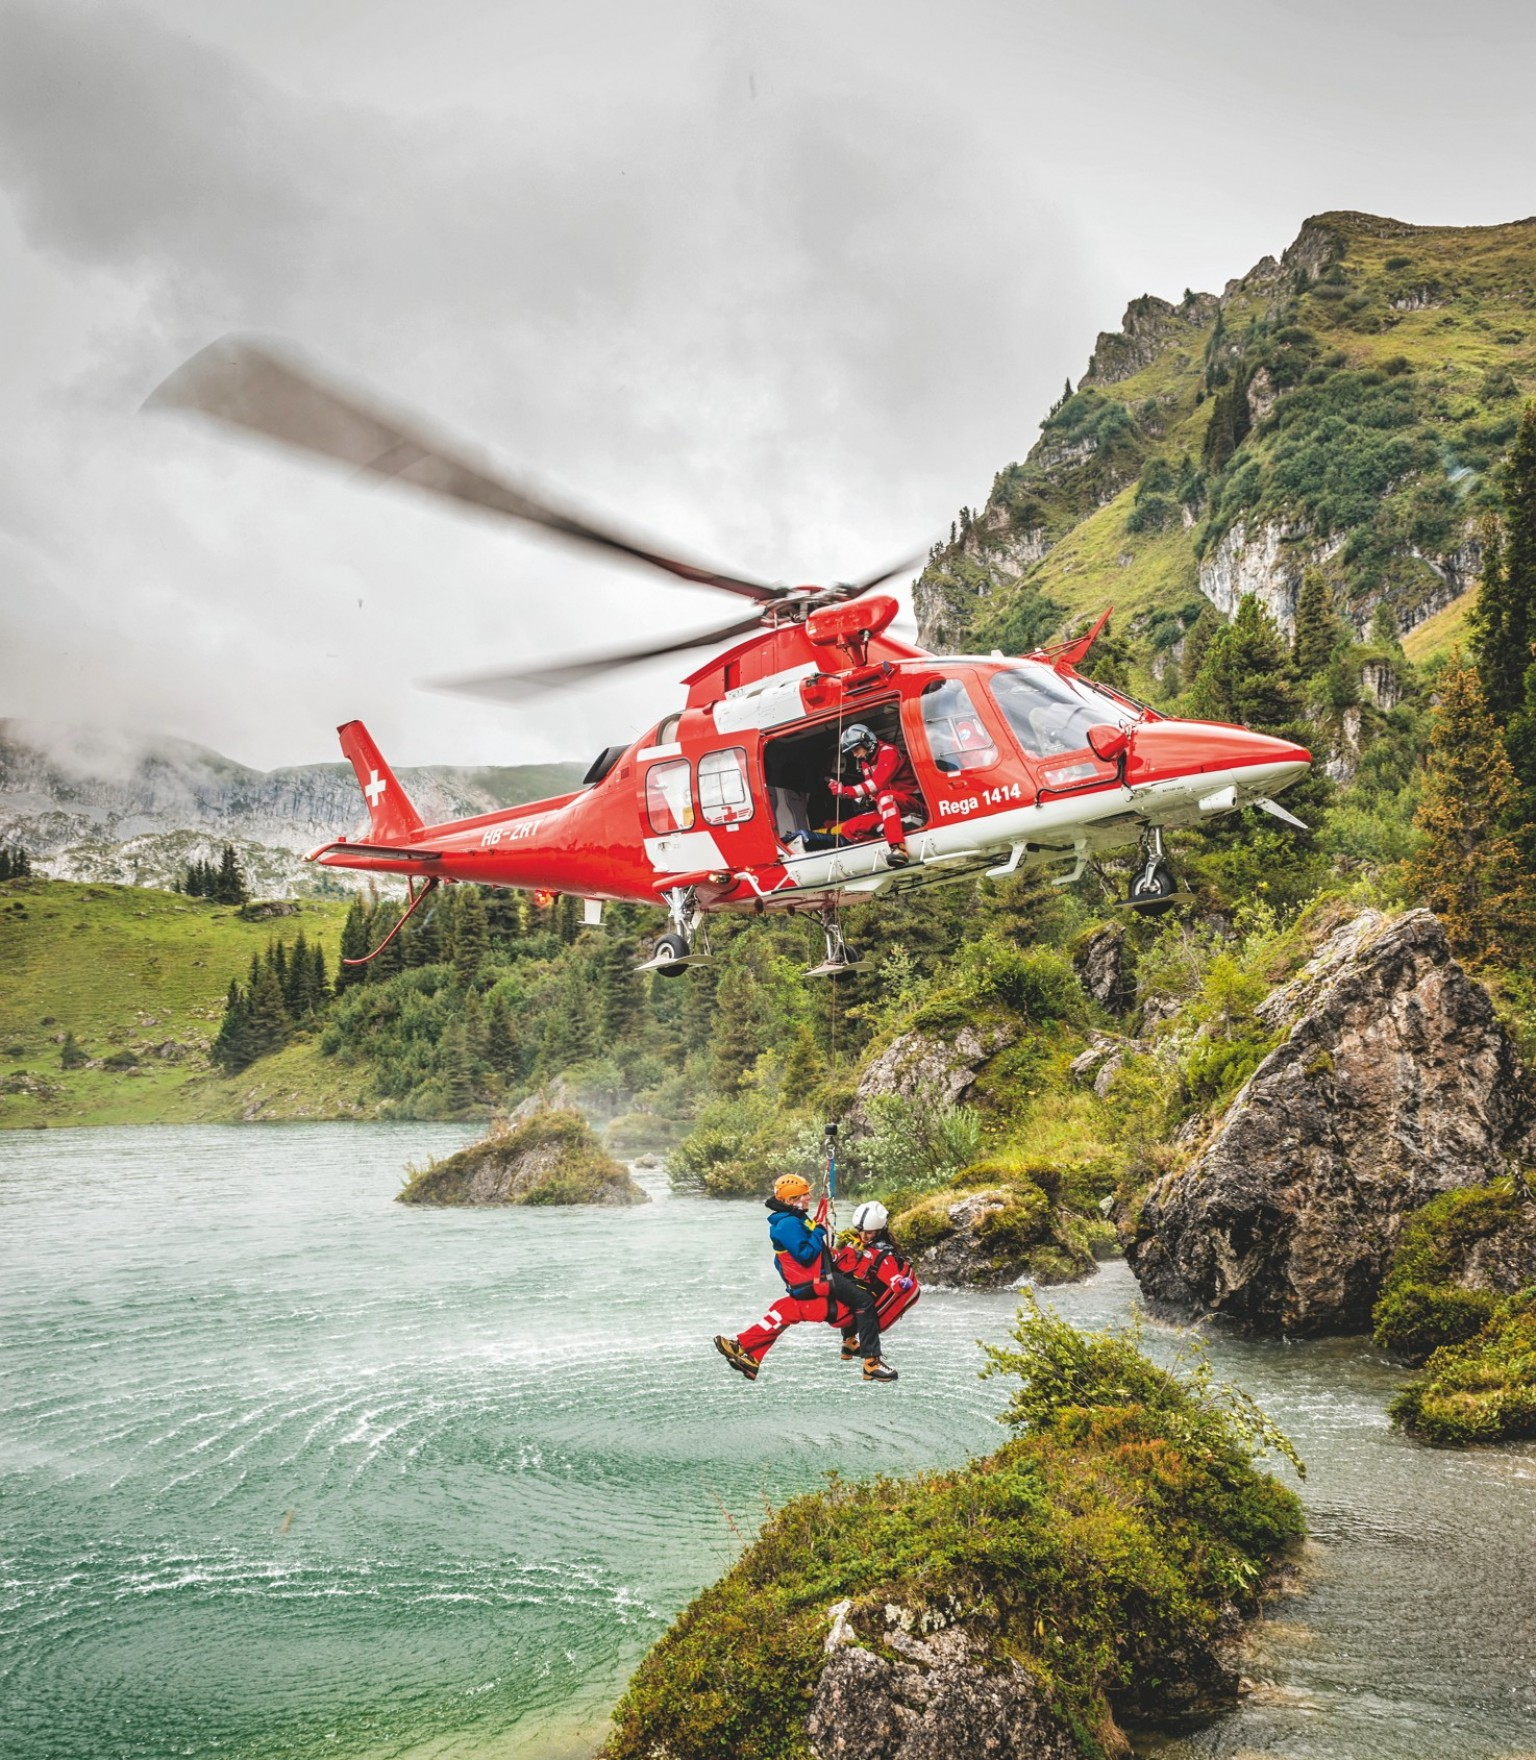 A Rega Challenger helicopter rescue in the Alps